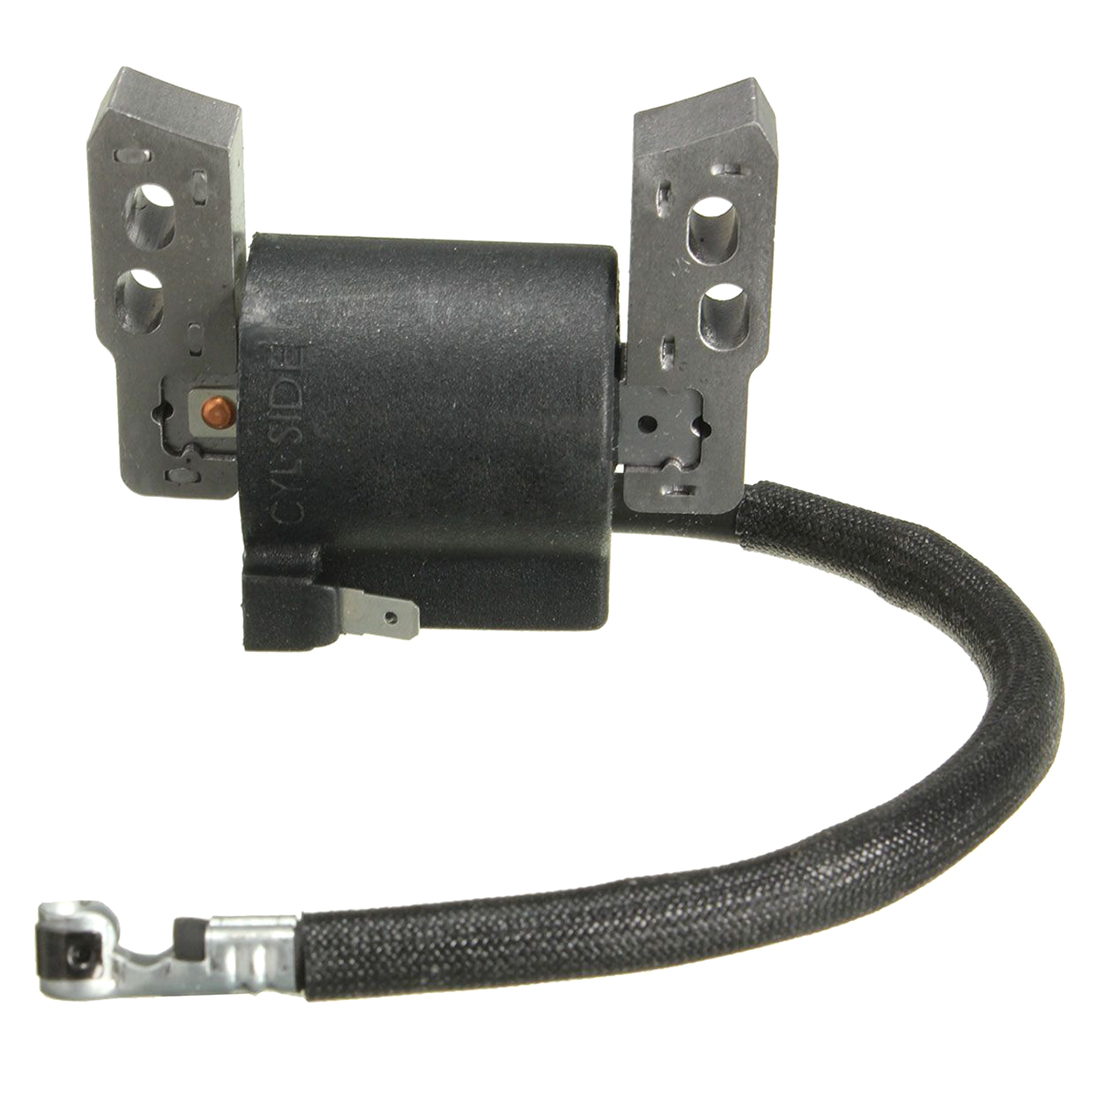 Ignition Coil Engine Light: Lawn Electronic Ignition Coil For Briggs & Stratton 695711